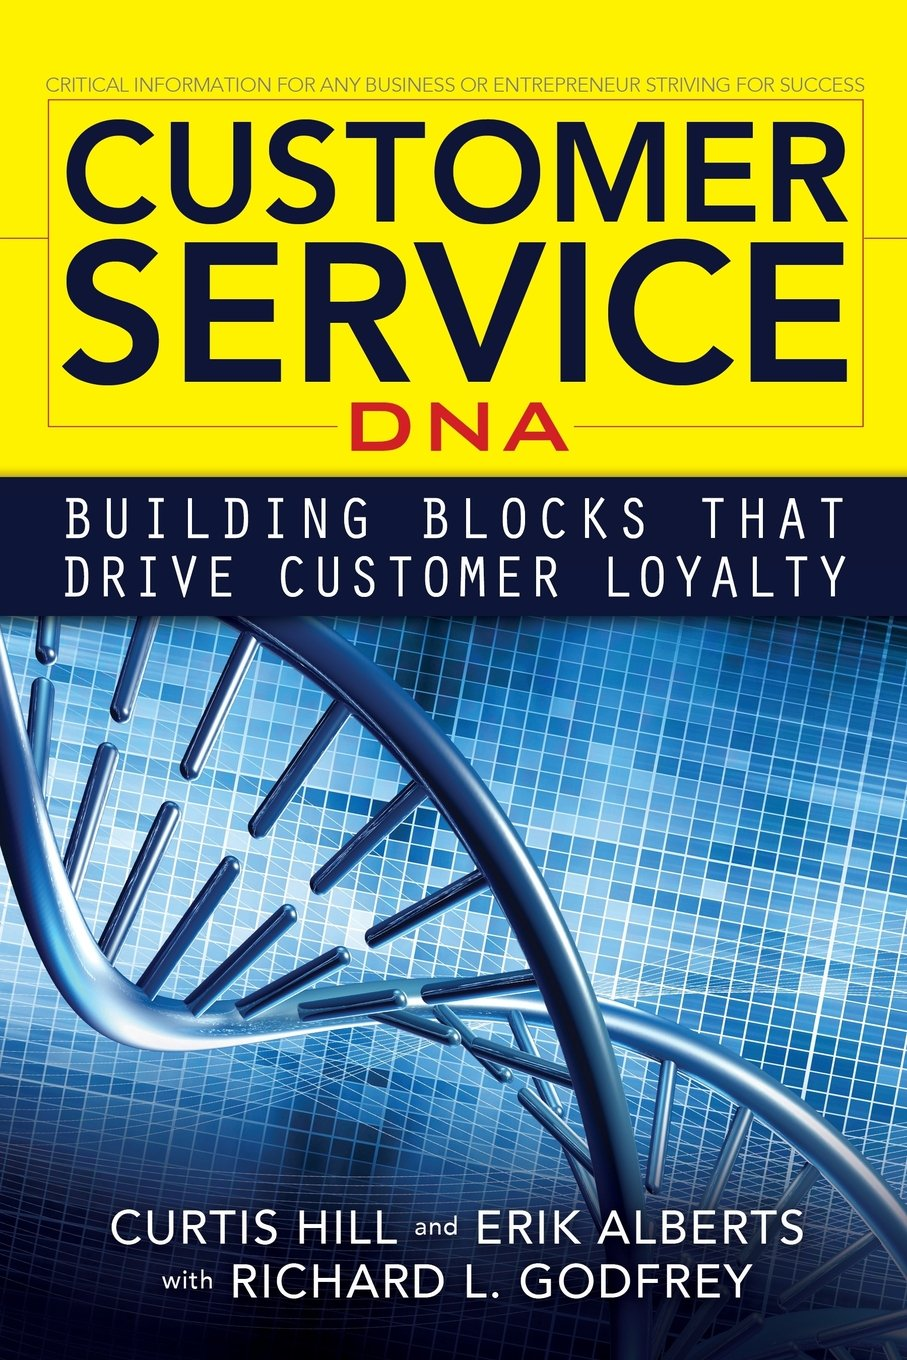 Customer Service DNA: Building Blocks that Drive Customer Loyalty